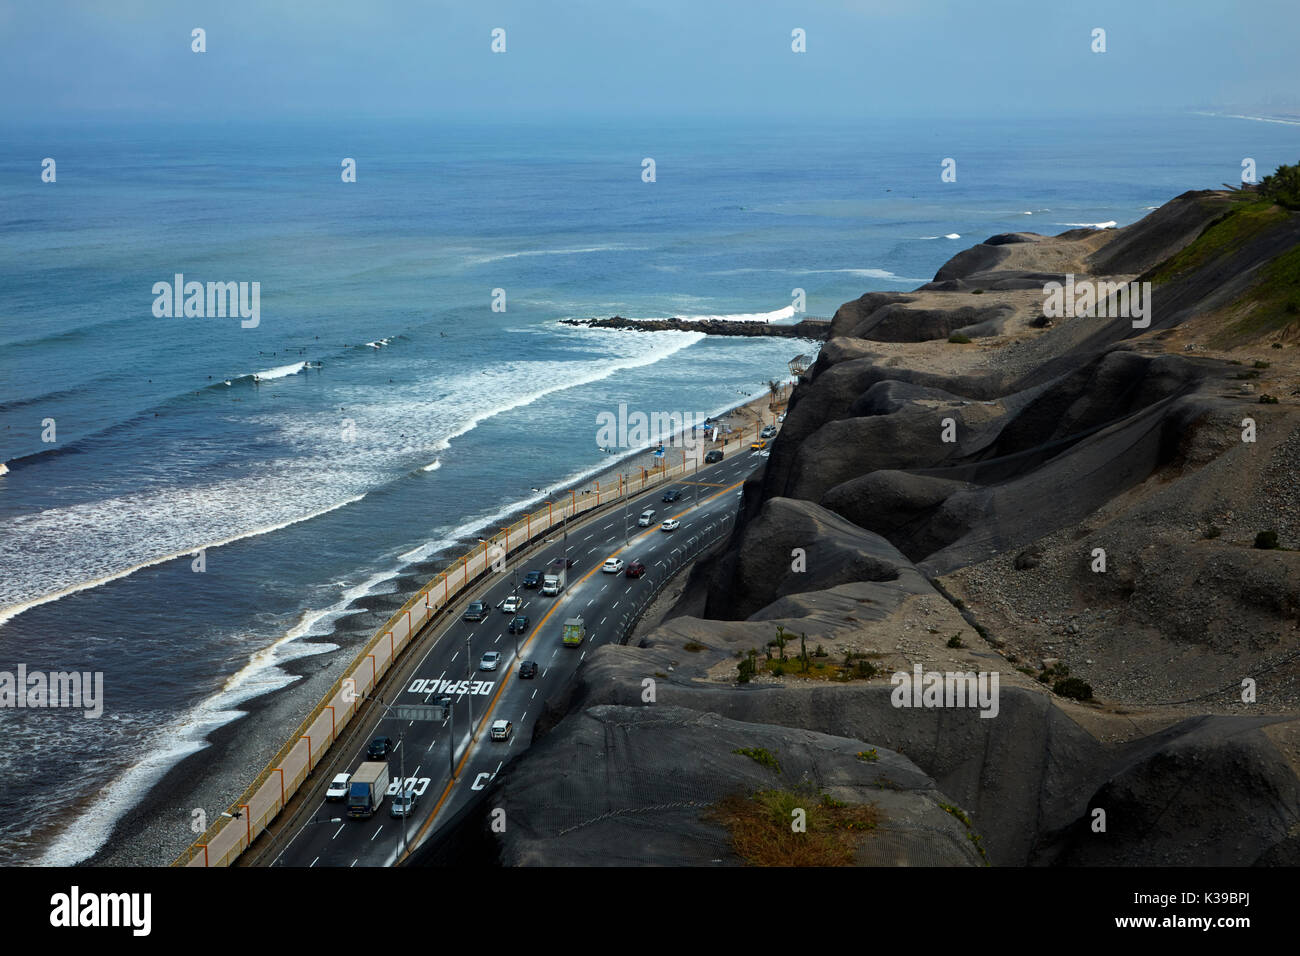 Pacific Ocean, beach, road and cliffs, Miraflores waterfront, Lima, Peru, South America - Stock Image